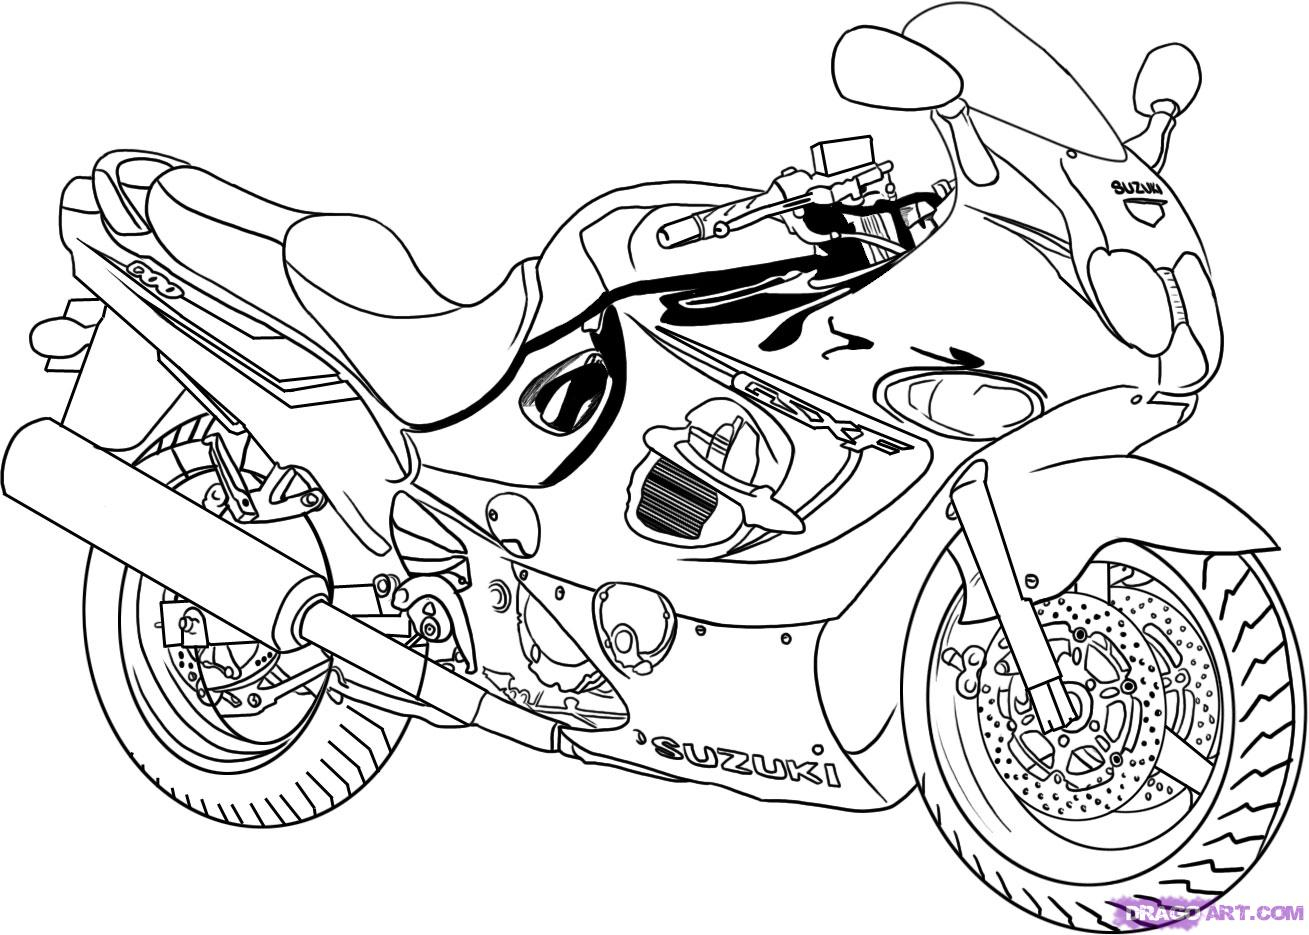 1309x935 motorcycle drawing step by step how to draw a sport bike 2006